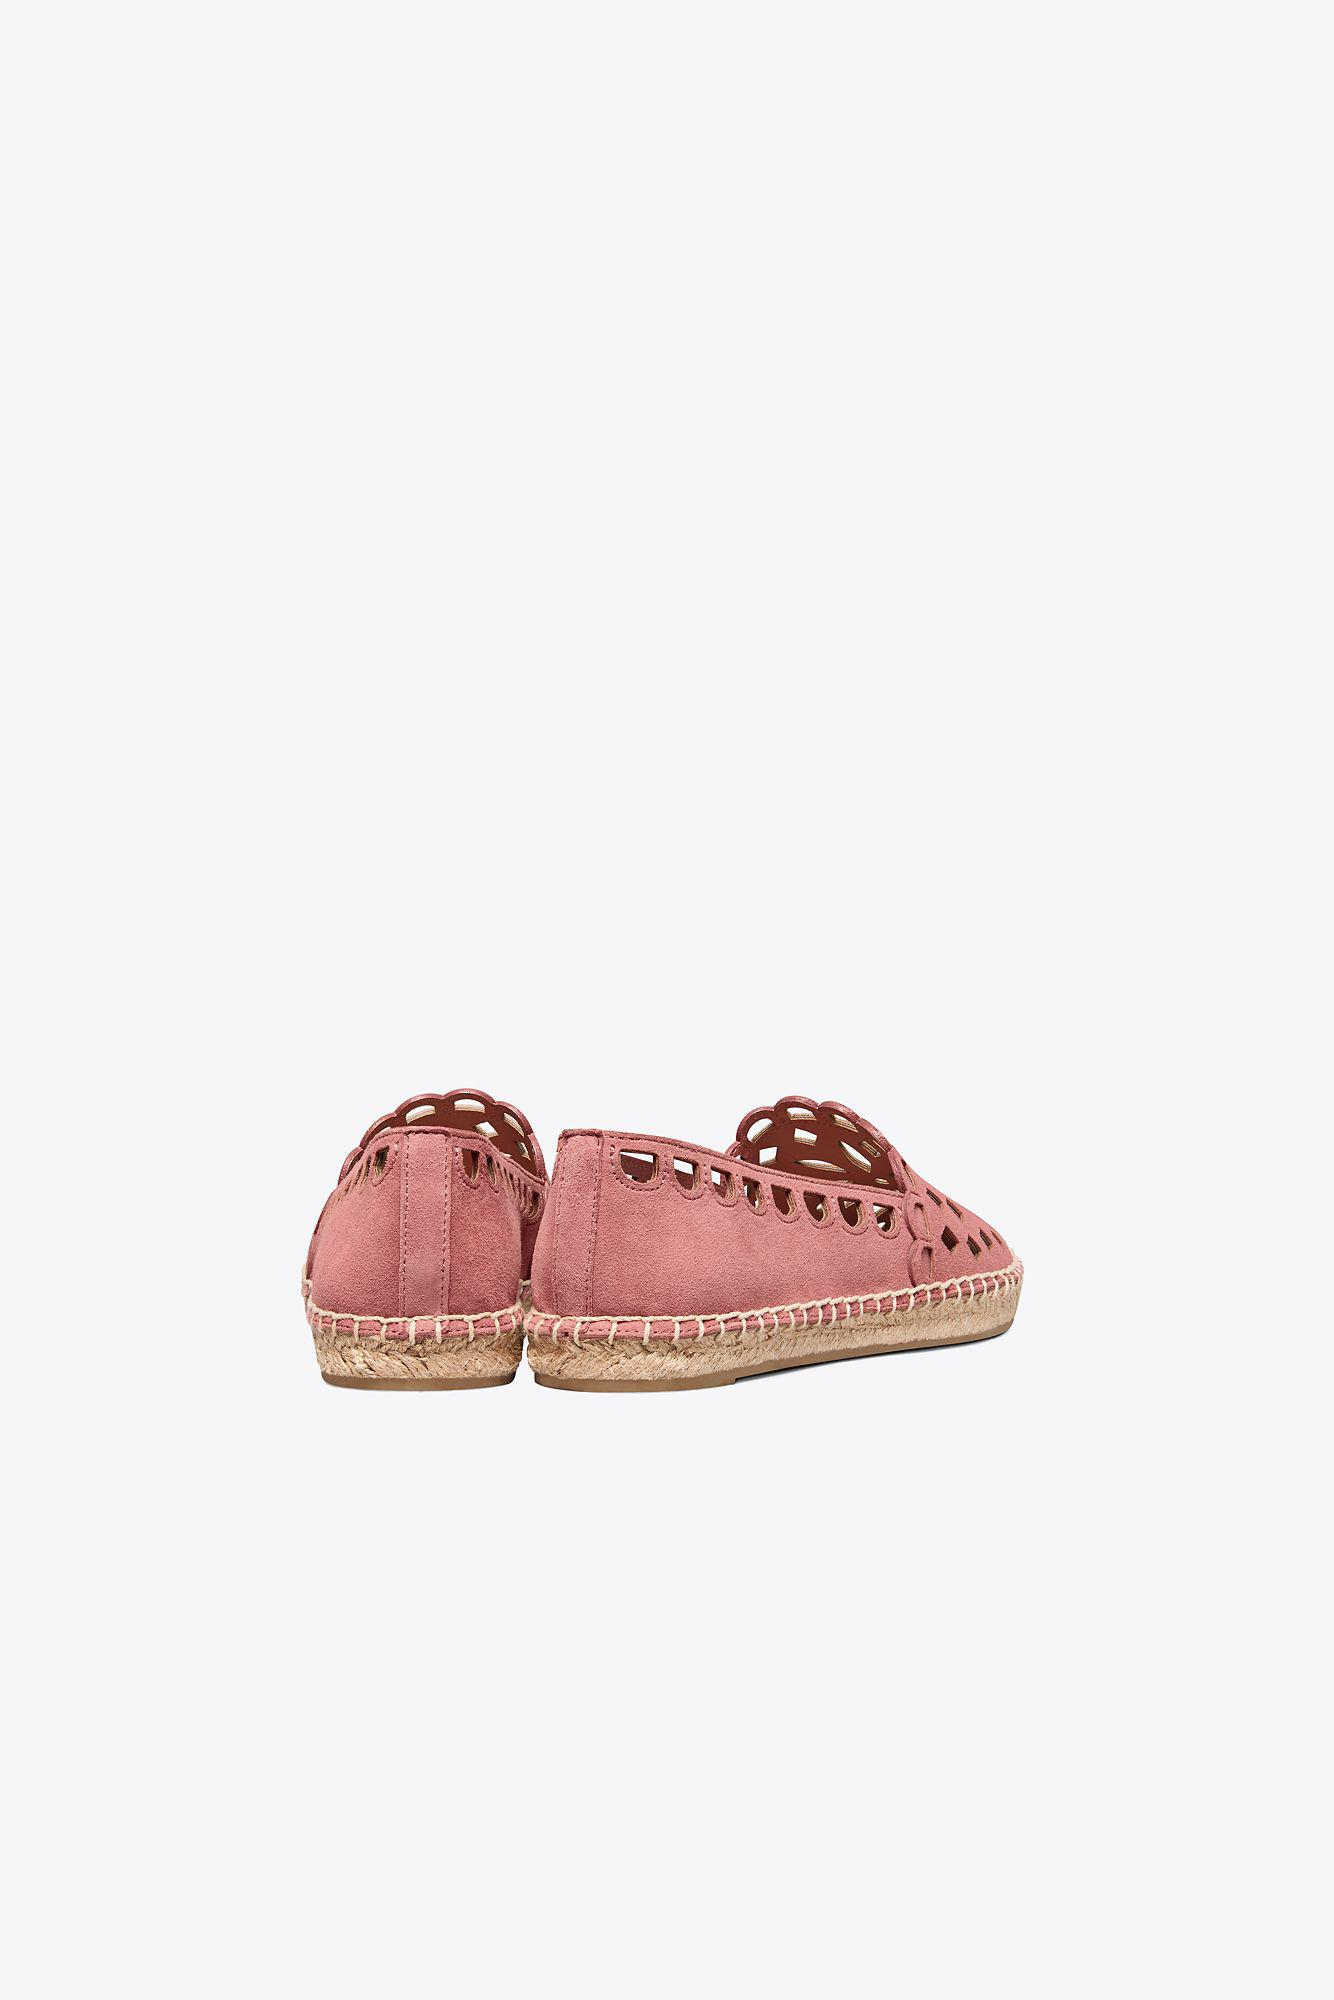 4140cf455fc Lyst - Tory Burch May Espadrille in Pink